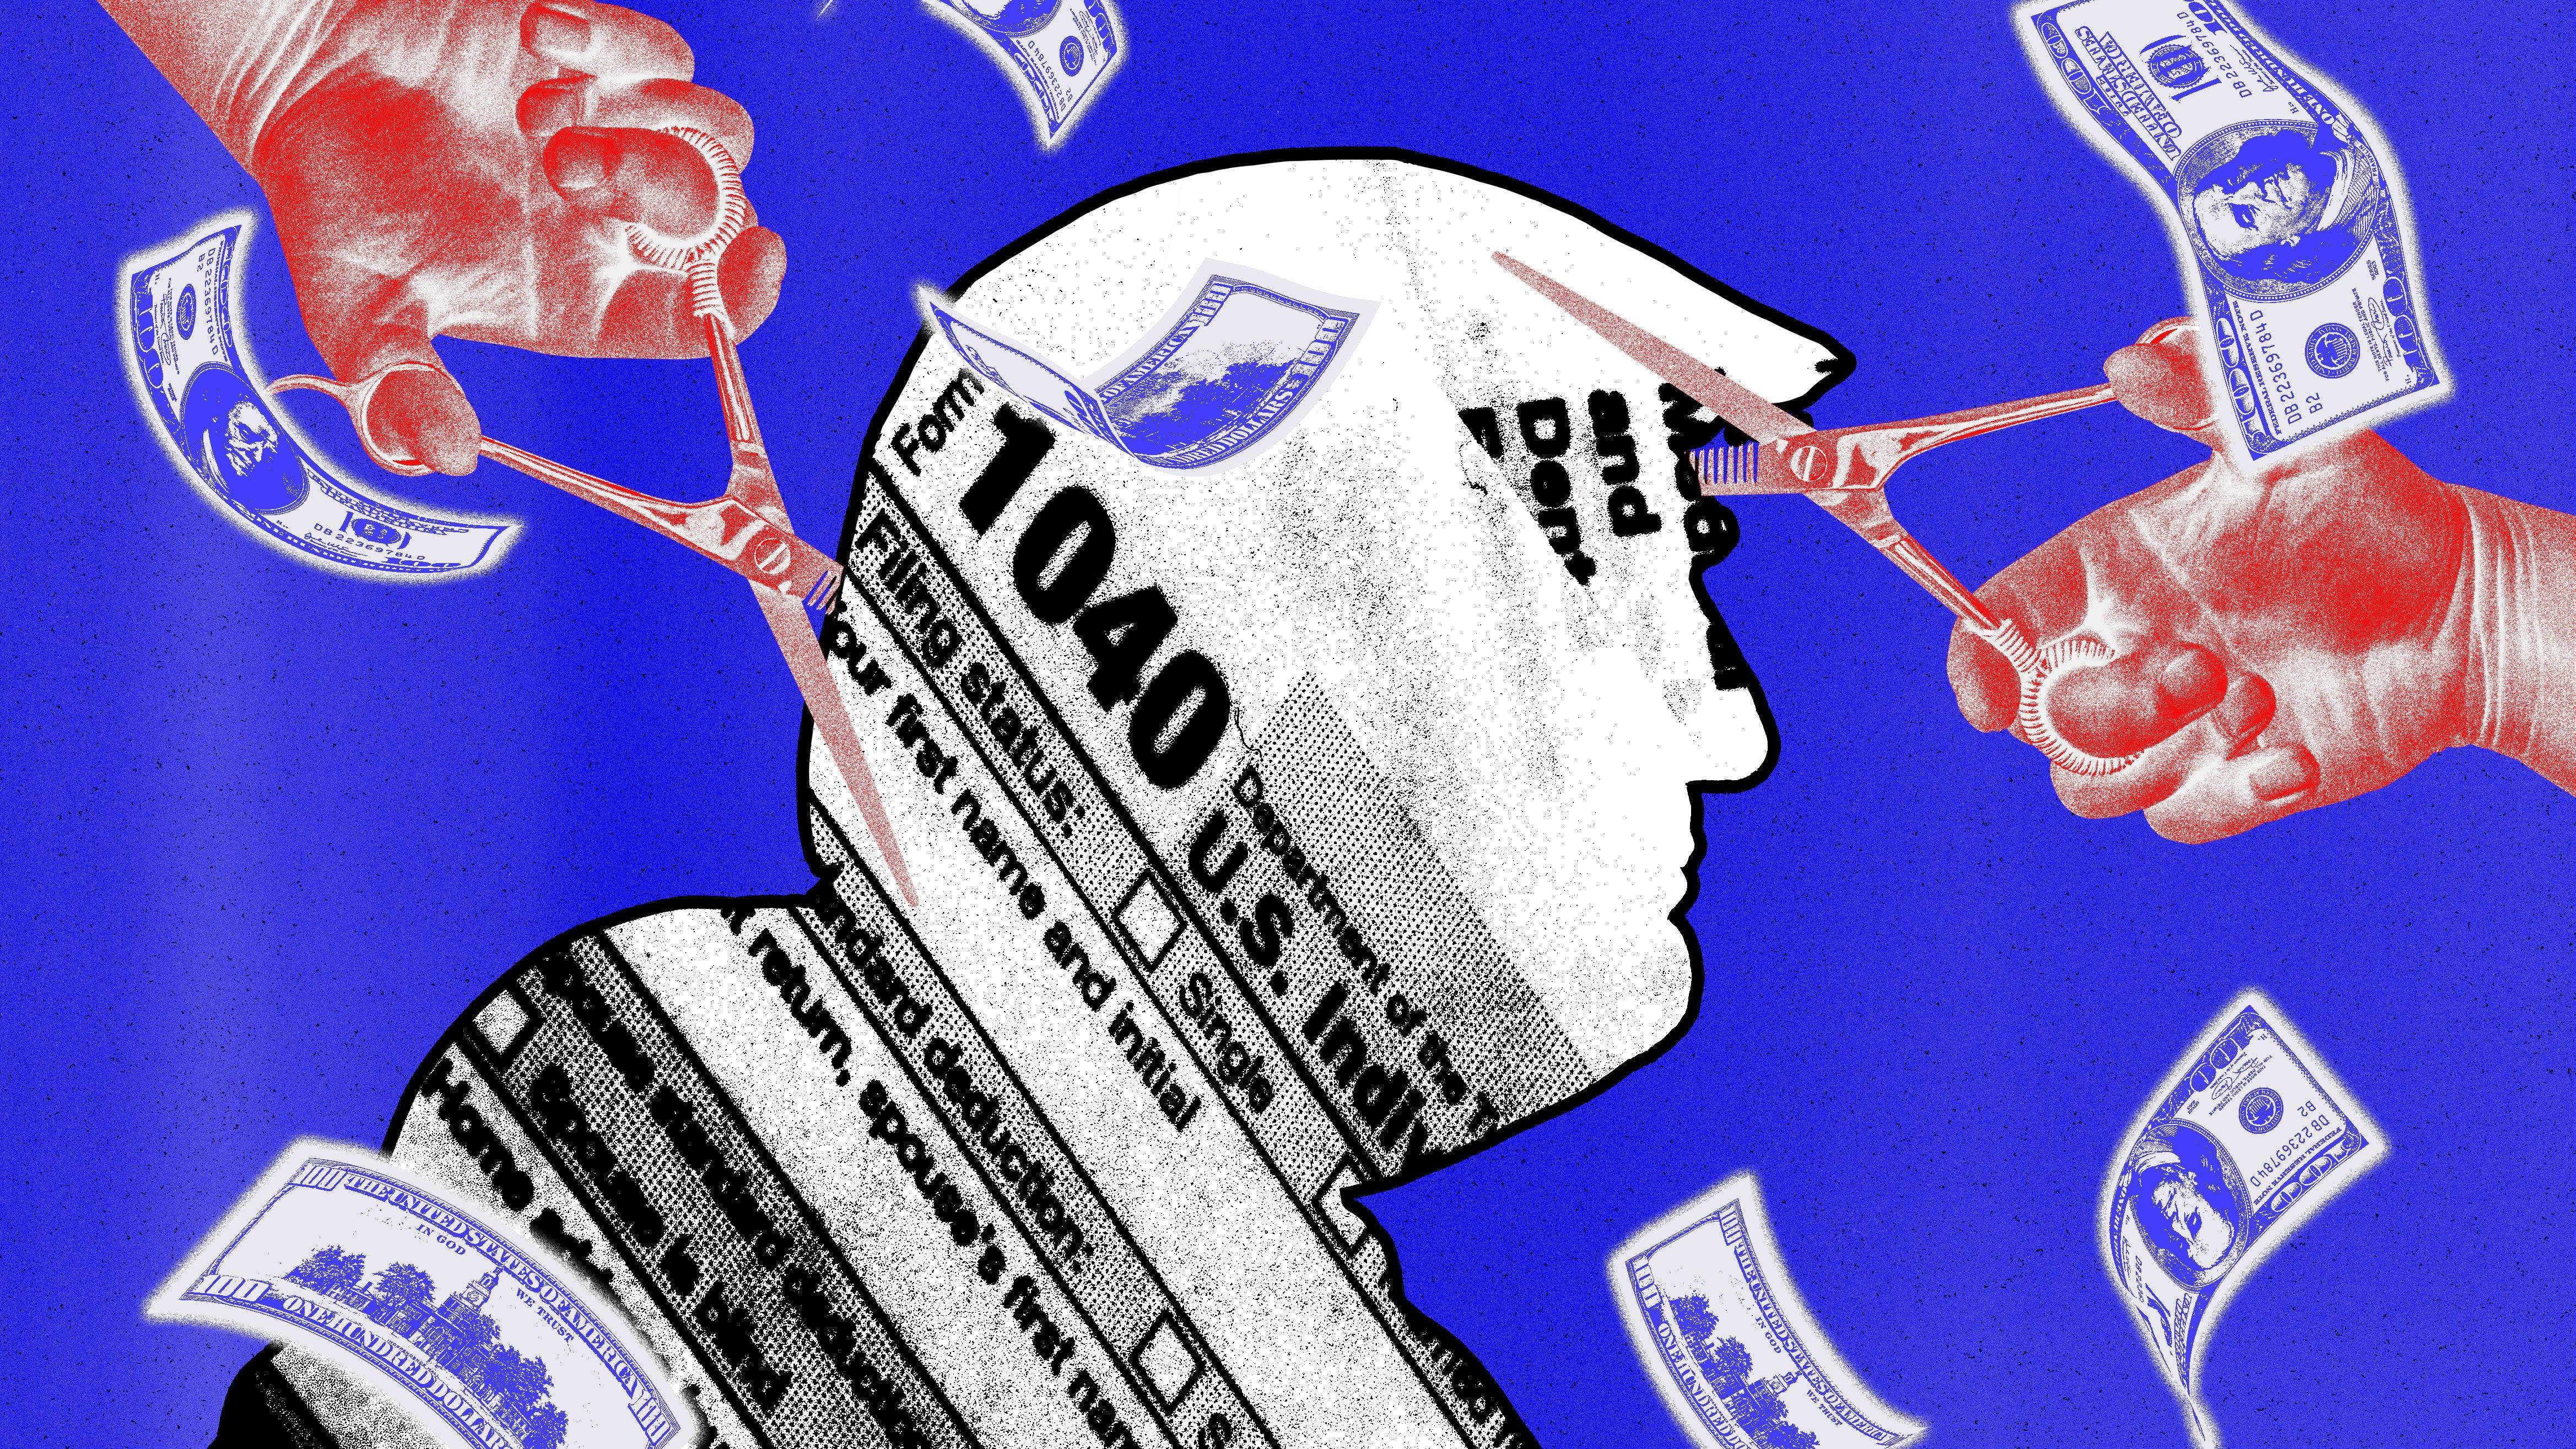 Trump Wrote Off $70,000 of Hairstyling on His Taxes. Can You Really Do That?